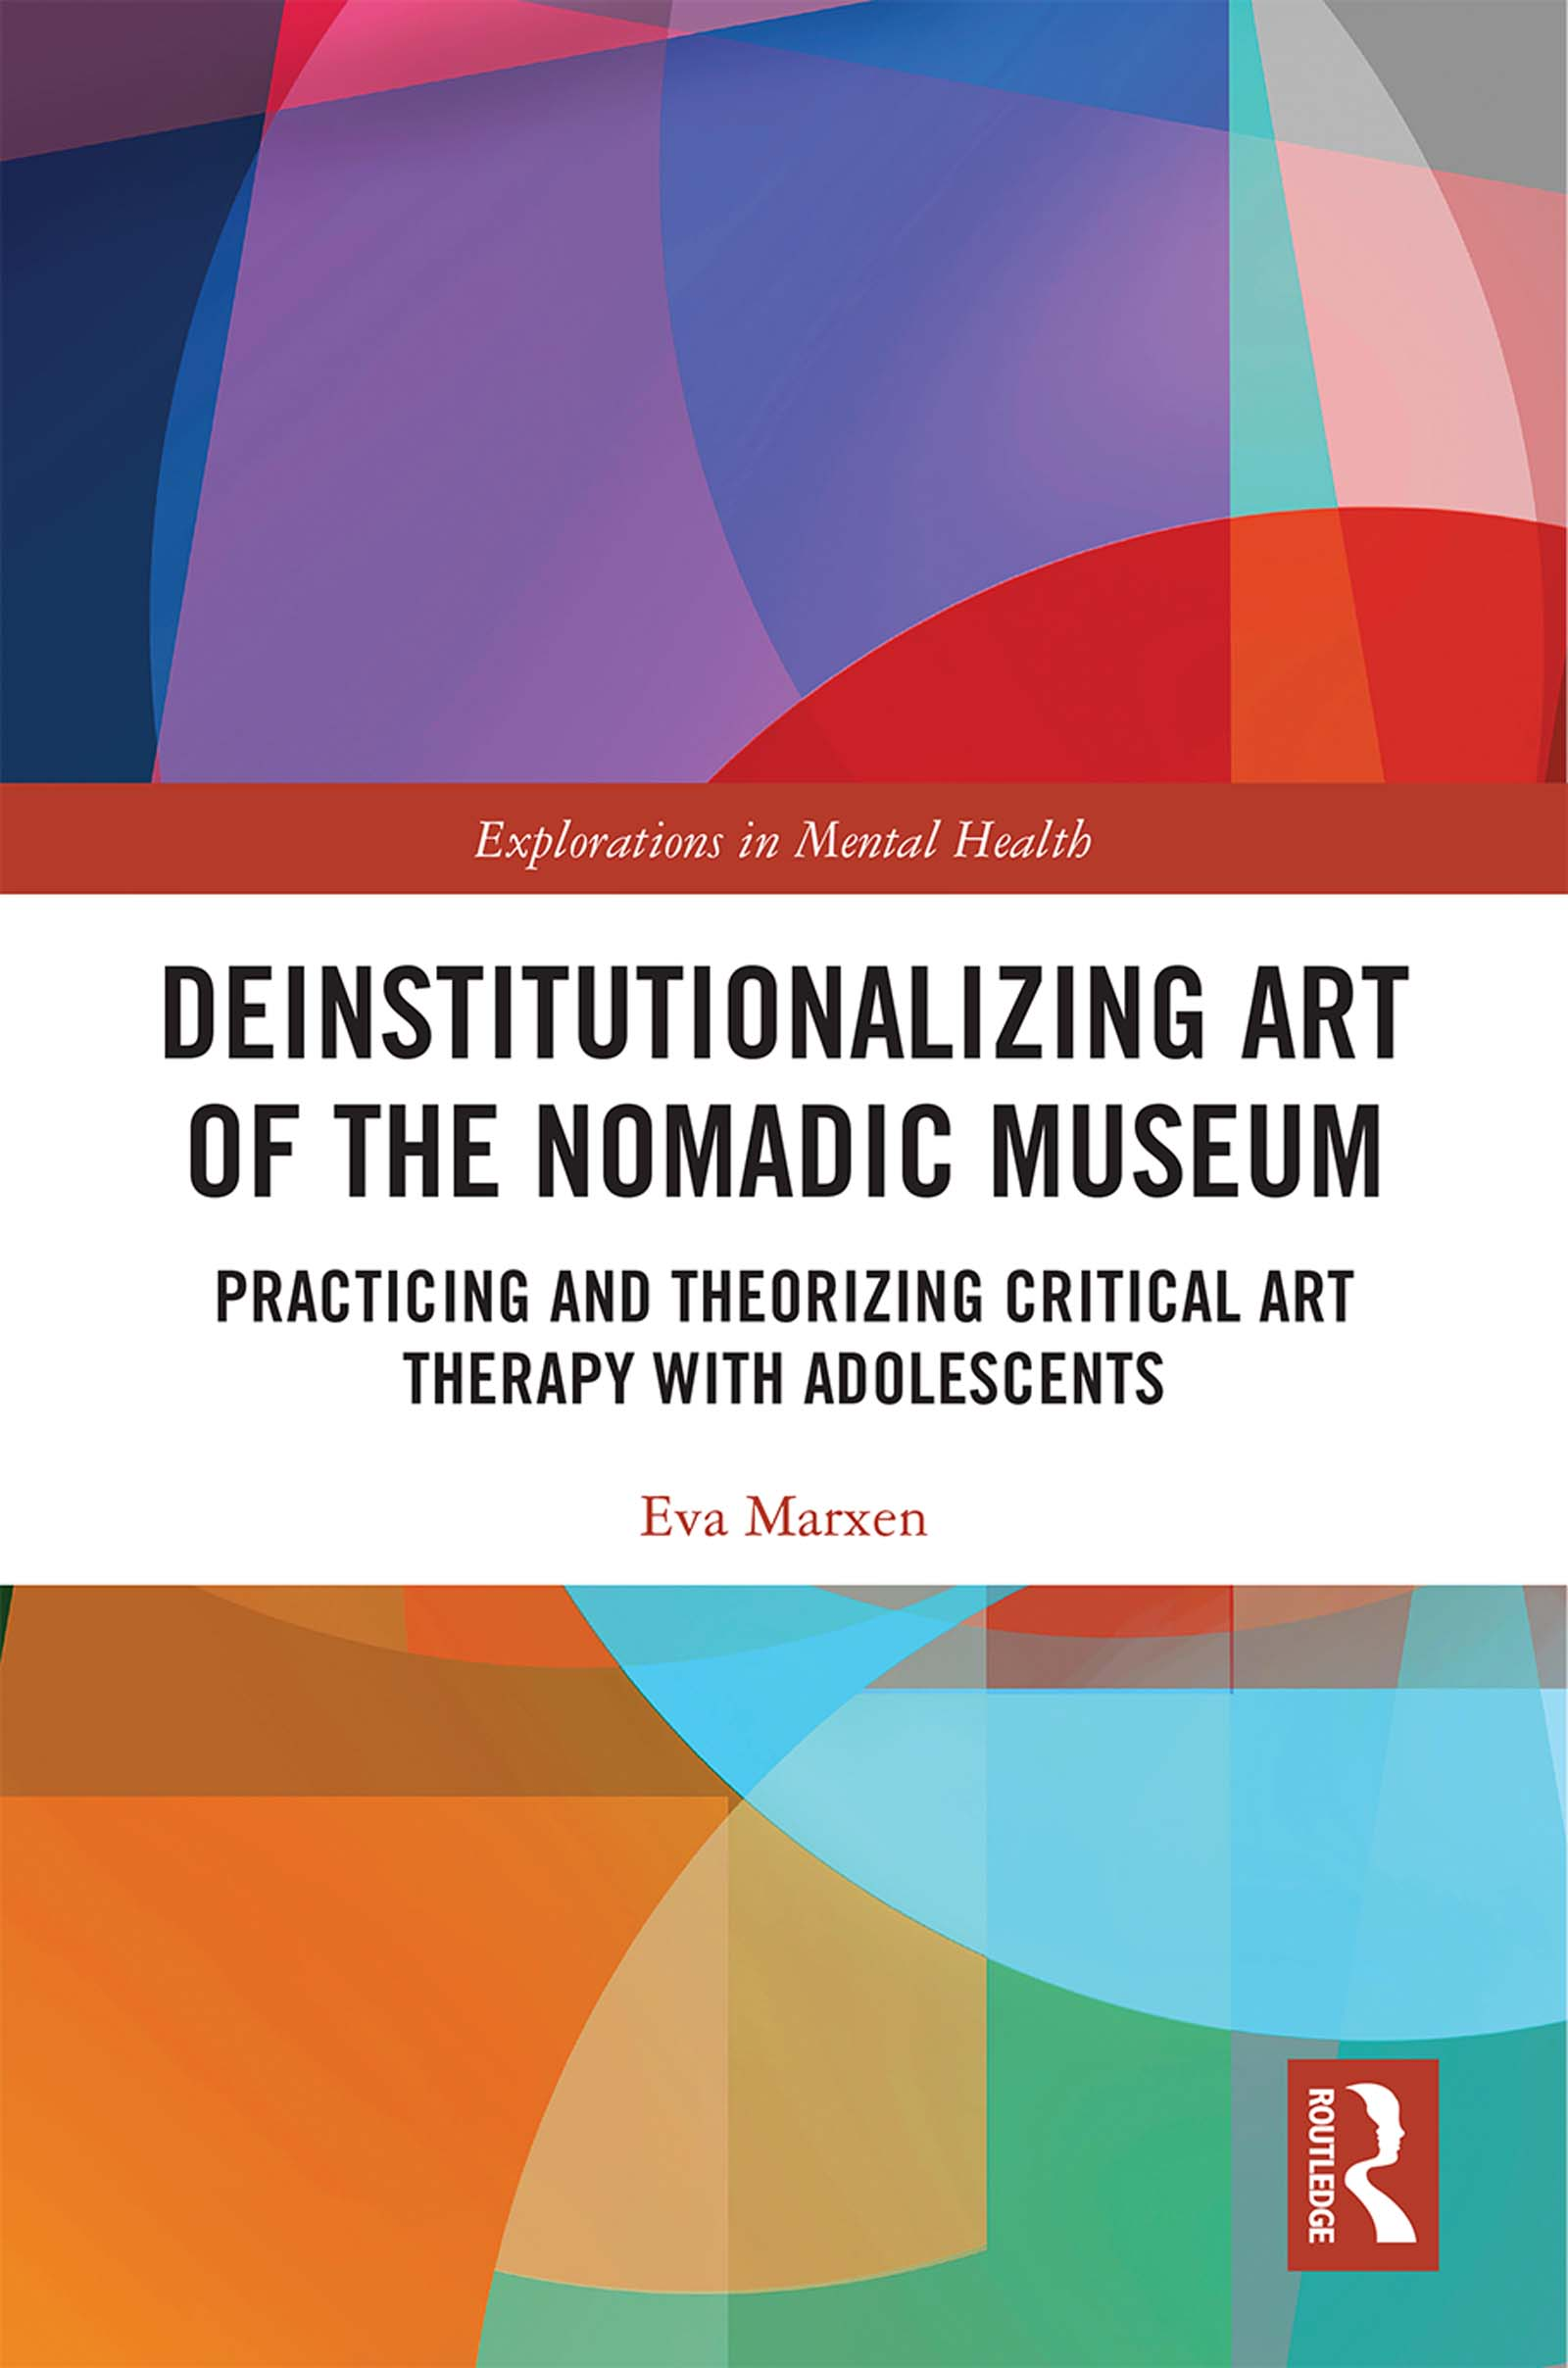 Deinstitutionalizing Art of the Nomadic Museum: Practicing And Theorizing Critical Art Therapy With Adolescents book cover